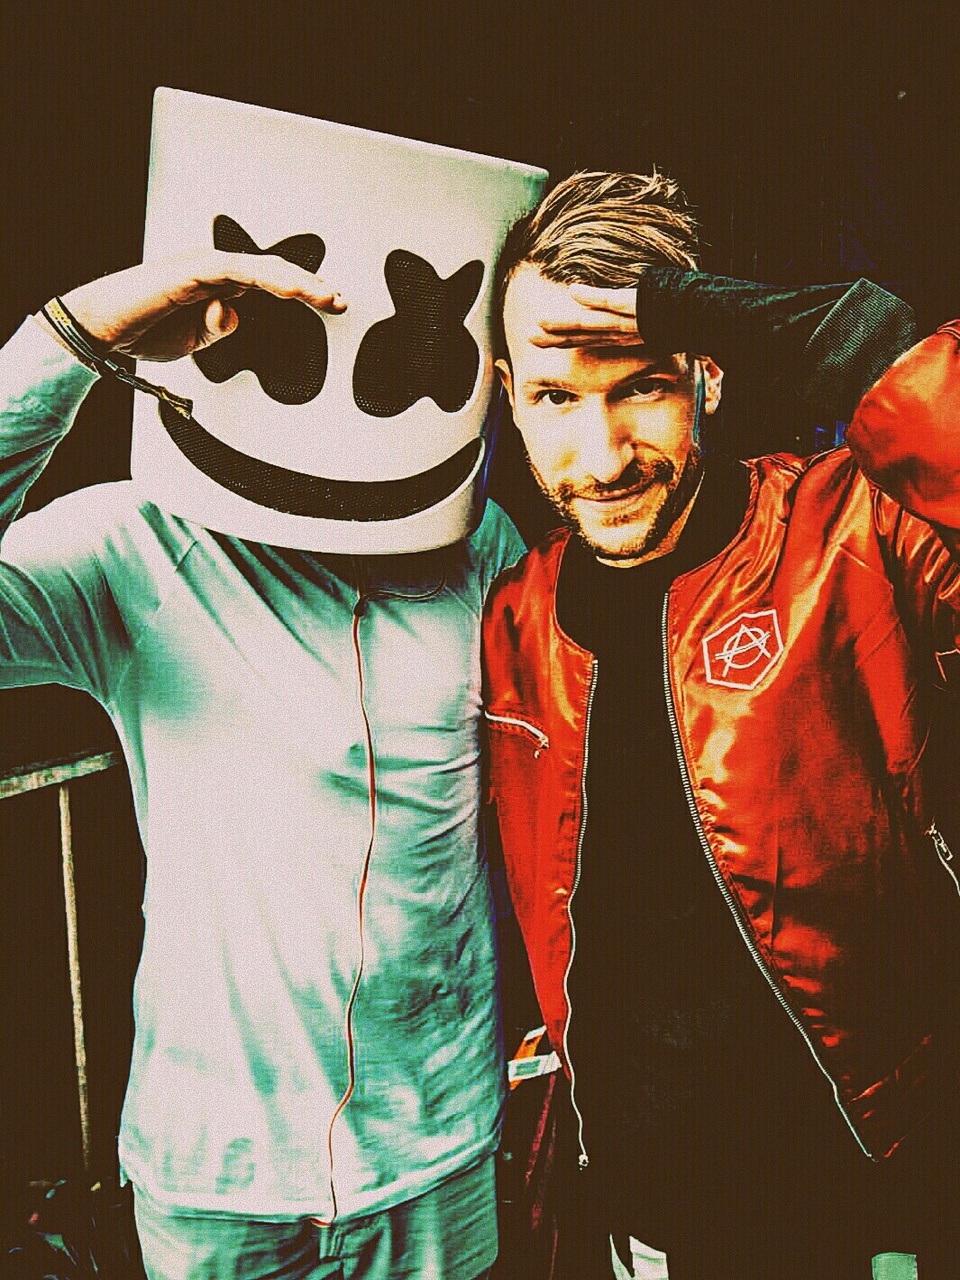 42 Images About Marshmello On We Heart It